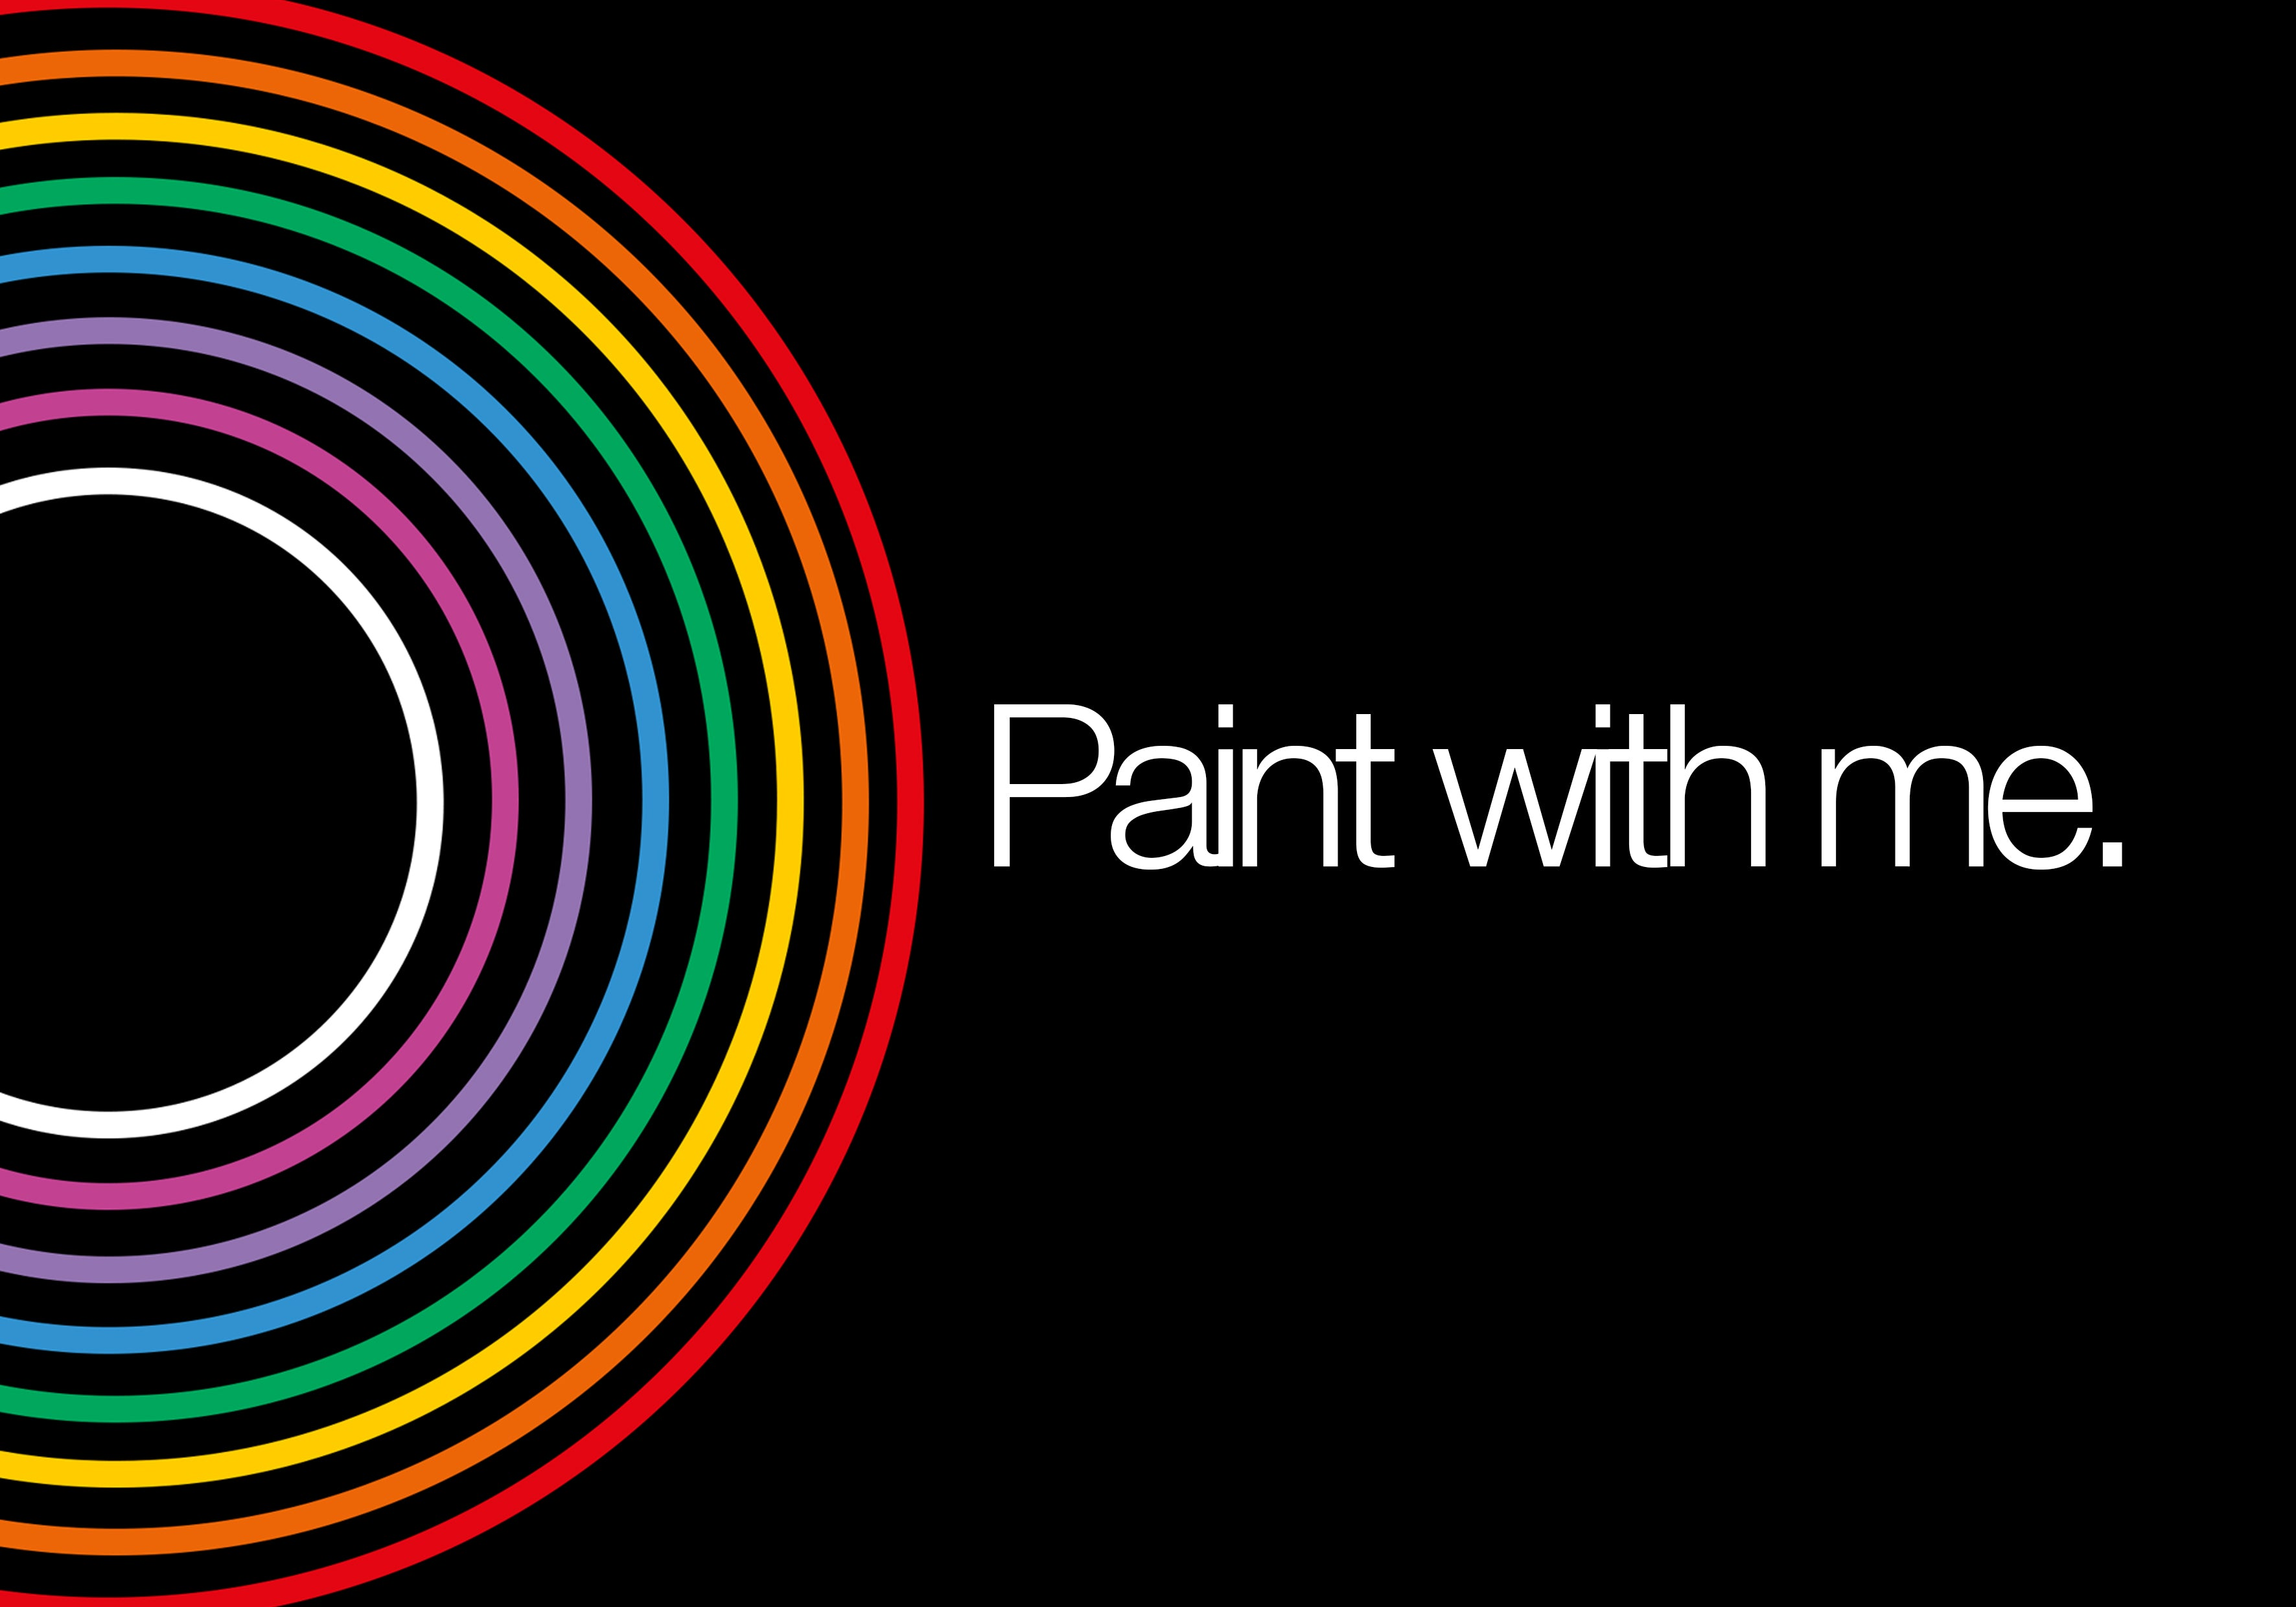 Paint with me.